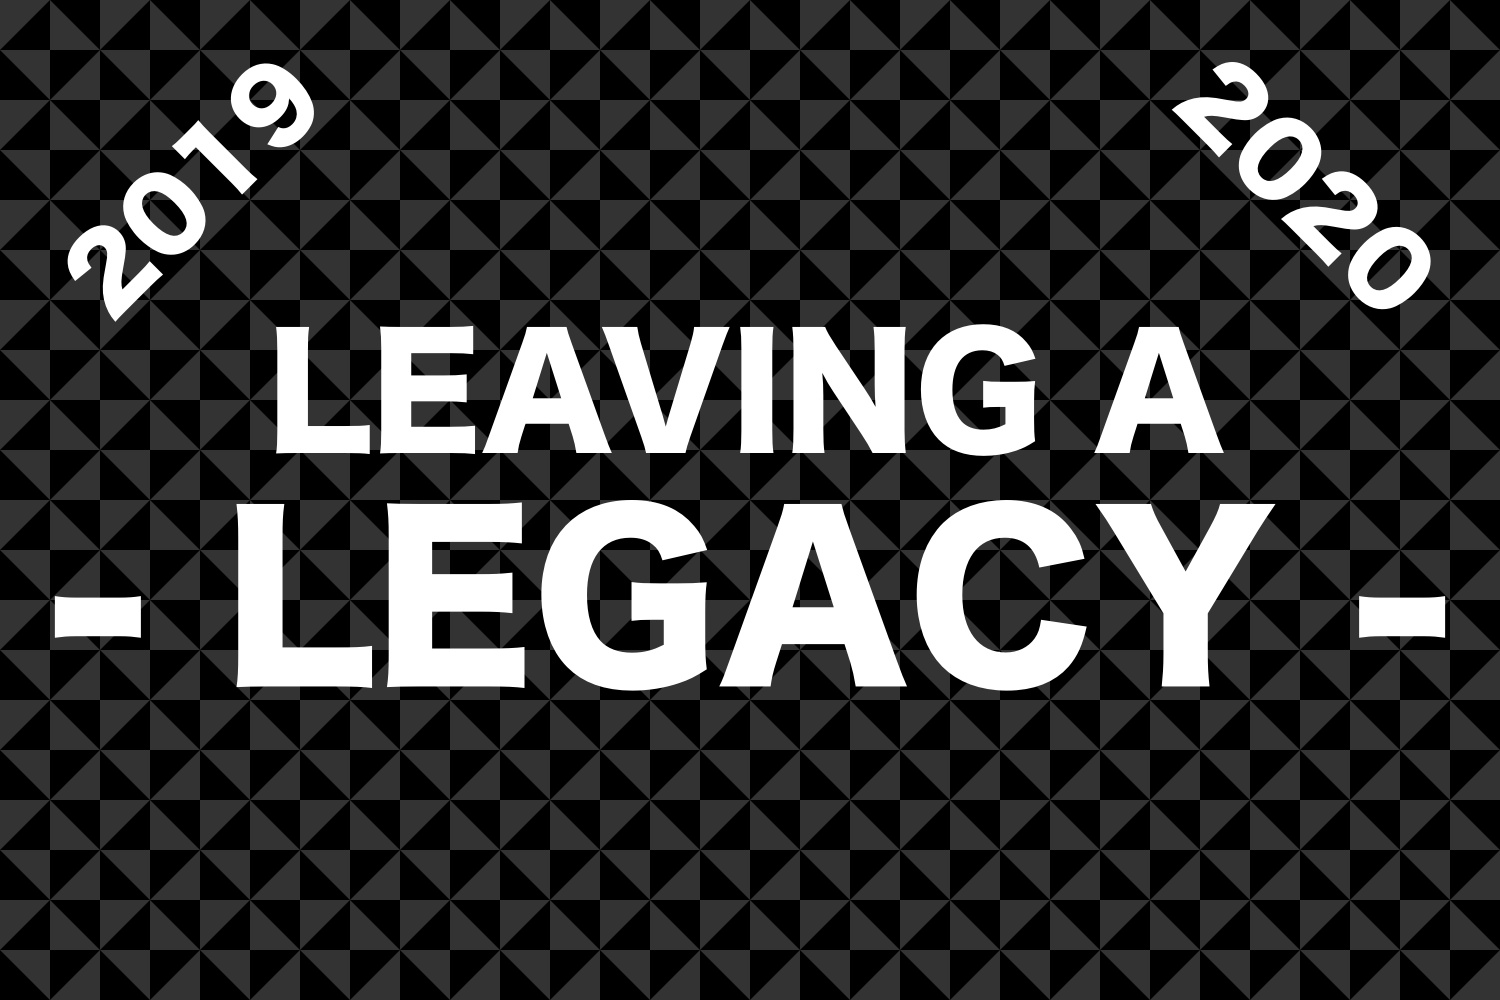 What does leaving a legacy behind reveal about a class?